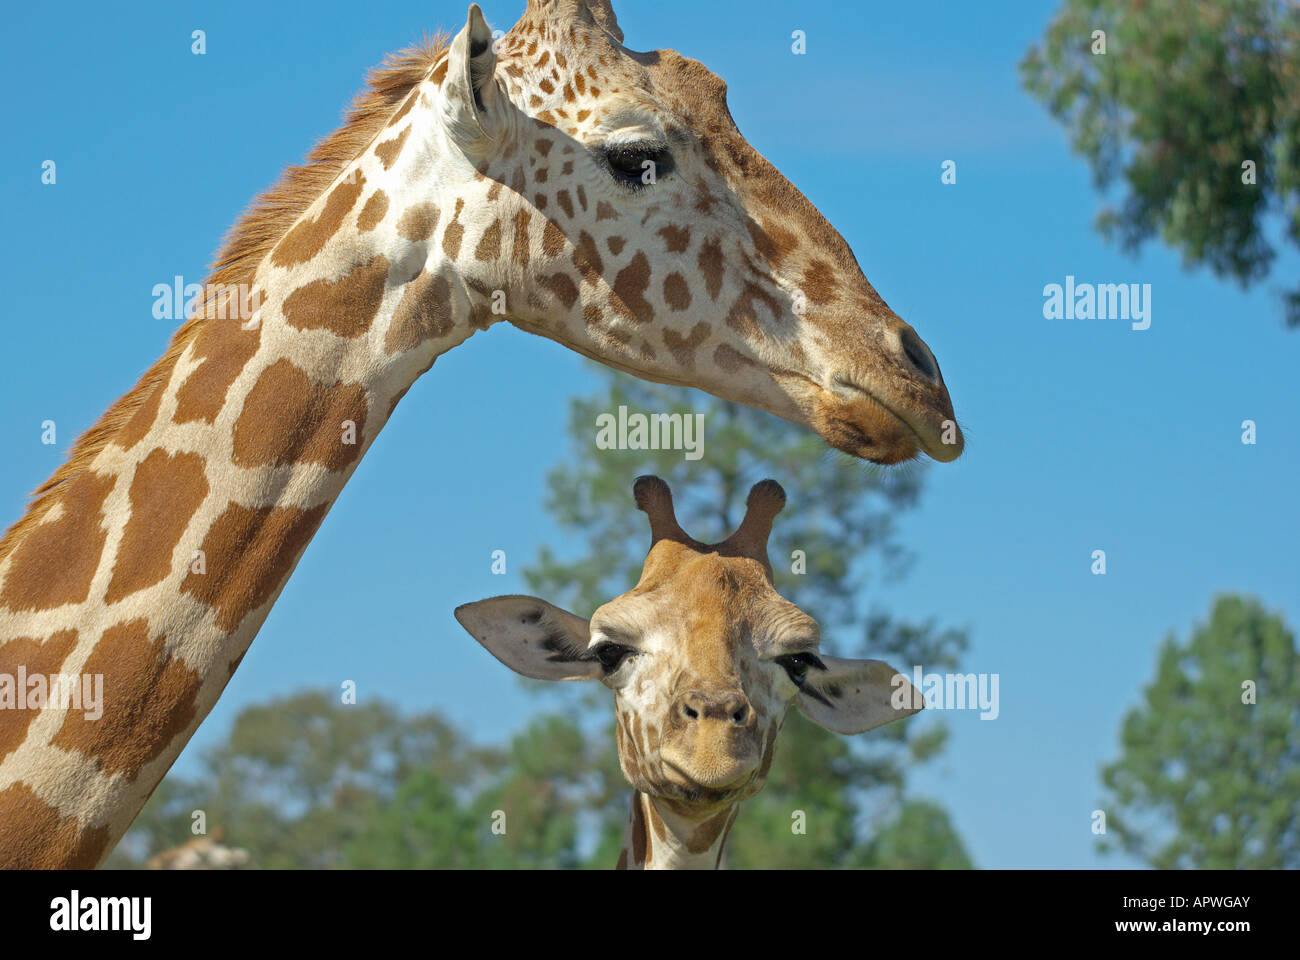 A Mother And Baby Giraffe Together Stock Photo 15870530 Alamy